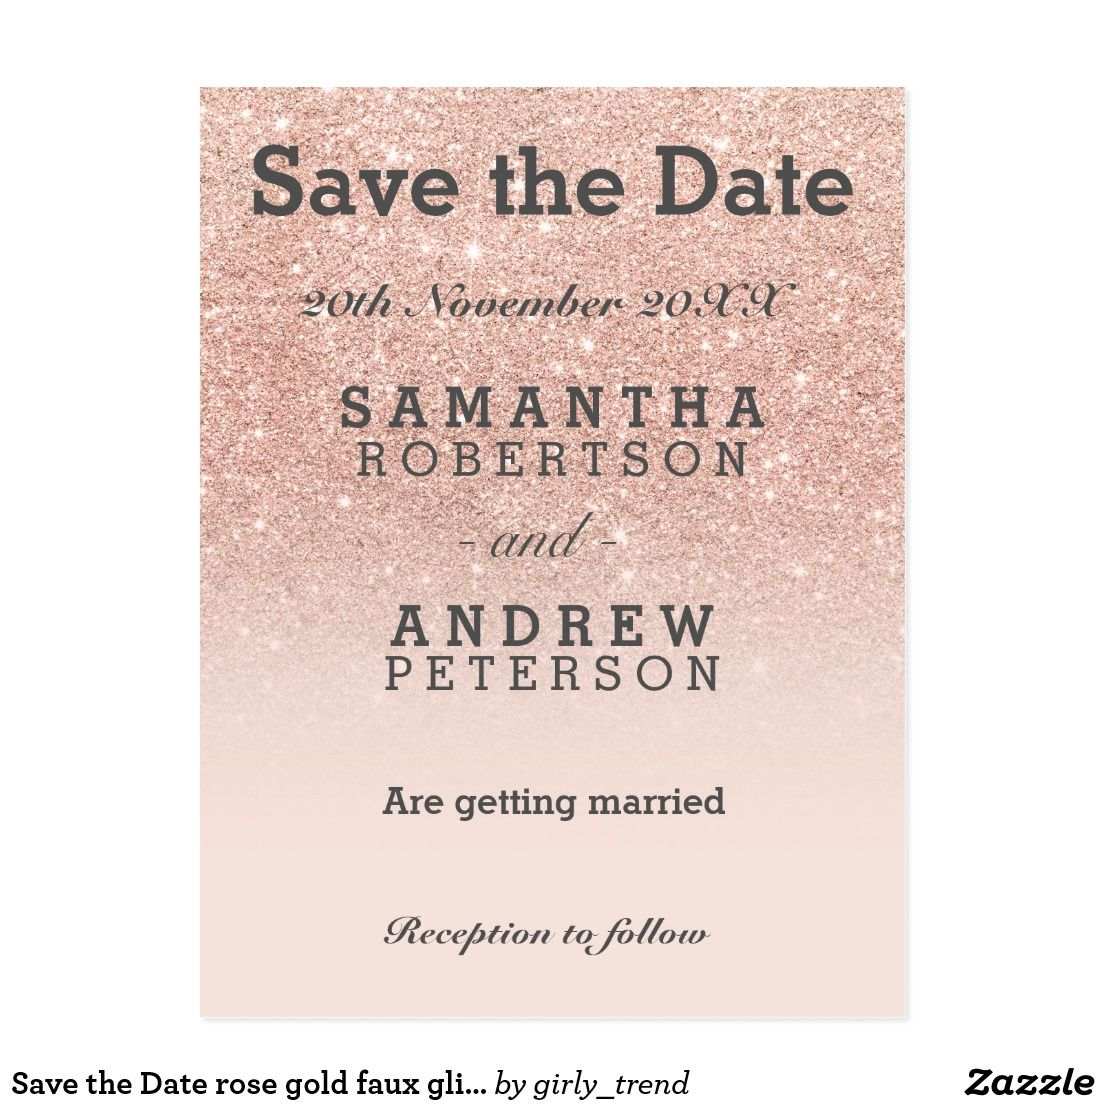 Save the date rose gold faux glitter pink ombre postcard wedding